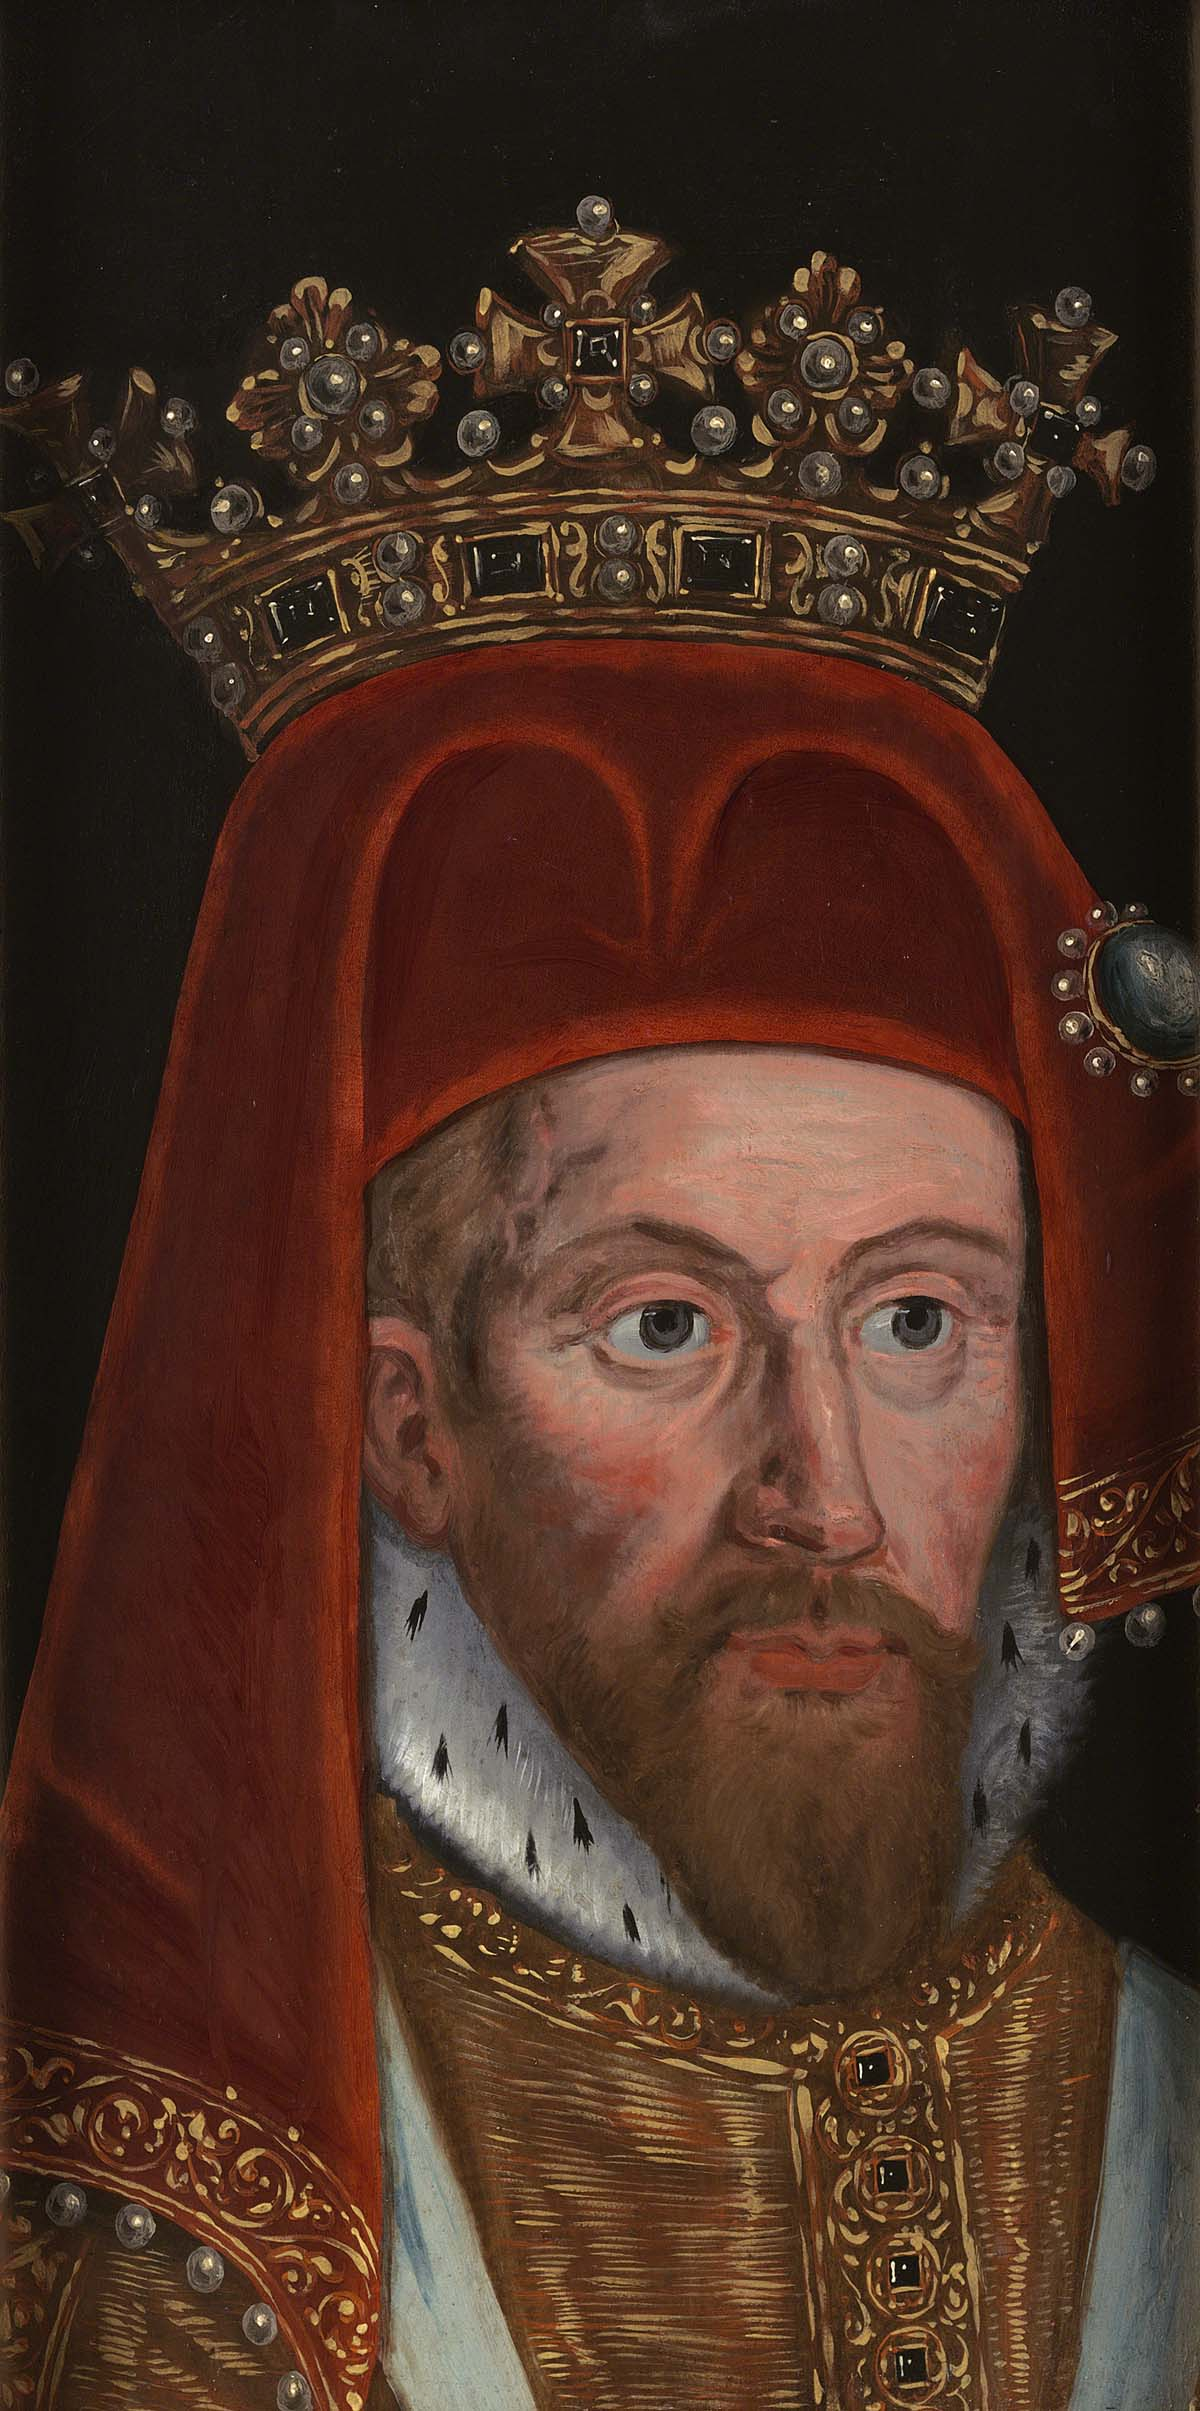 a late medieval portrait of King Henry IV with crown sitting on top of a red velvet cap with long earflaps